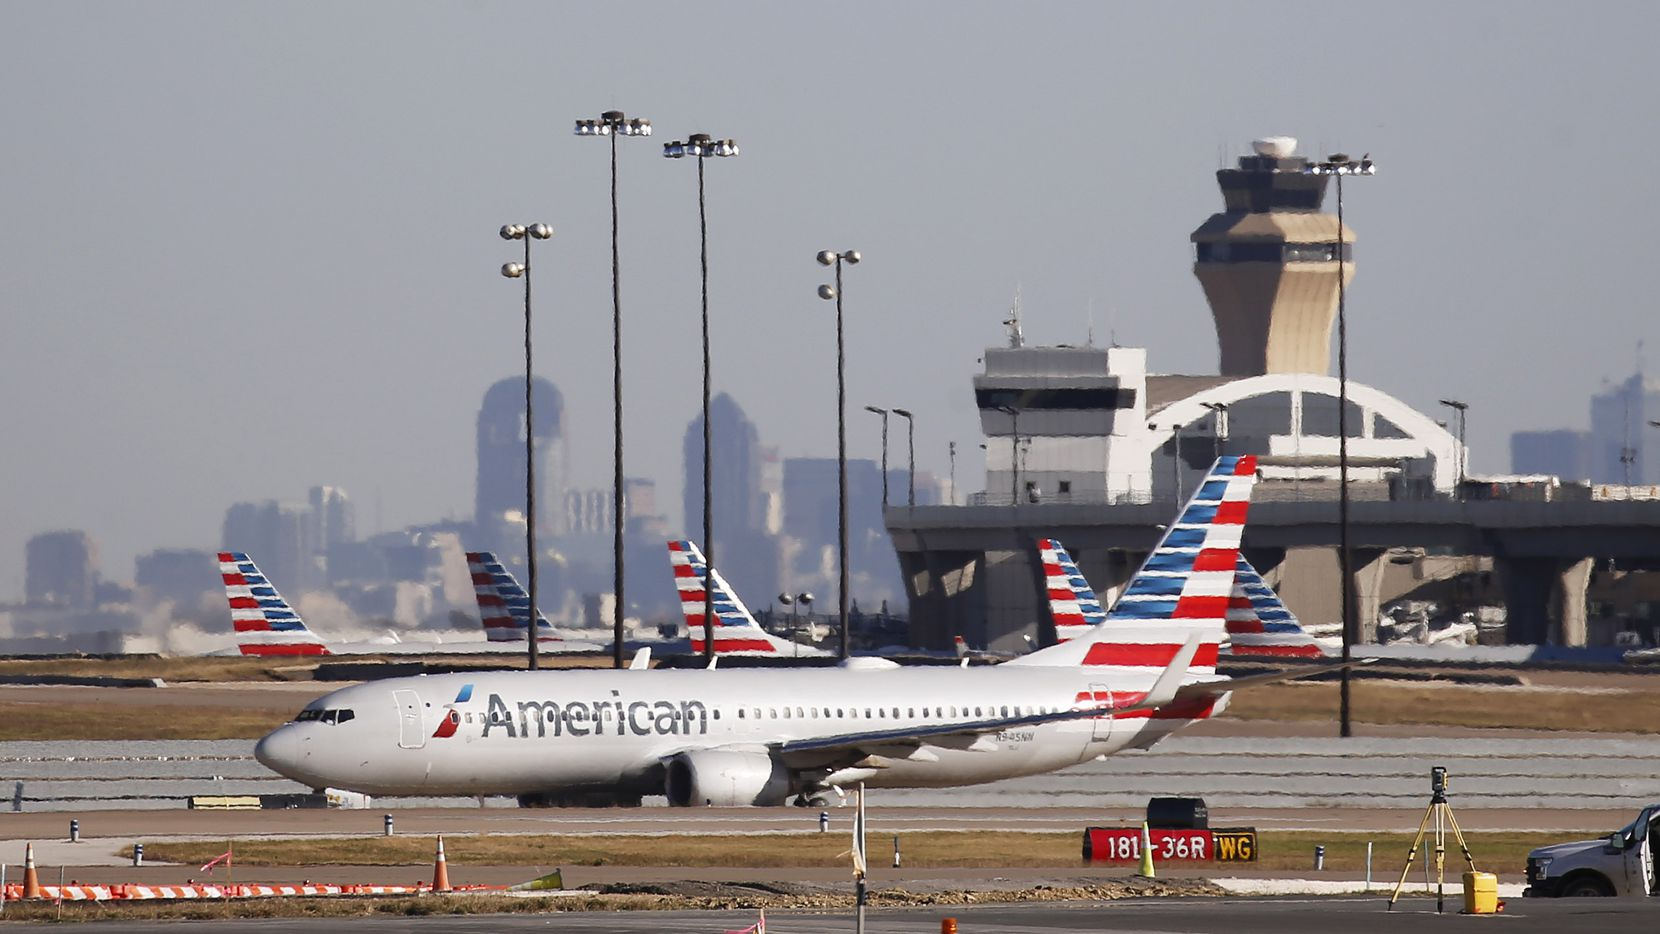 American Airlines has suffered since 2018 with on-time issues and cancellations due to union disputes and the grounding of the Boeing 737 Max.